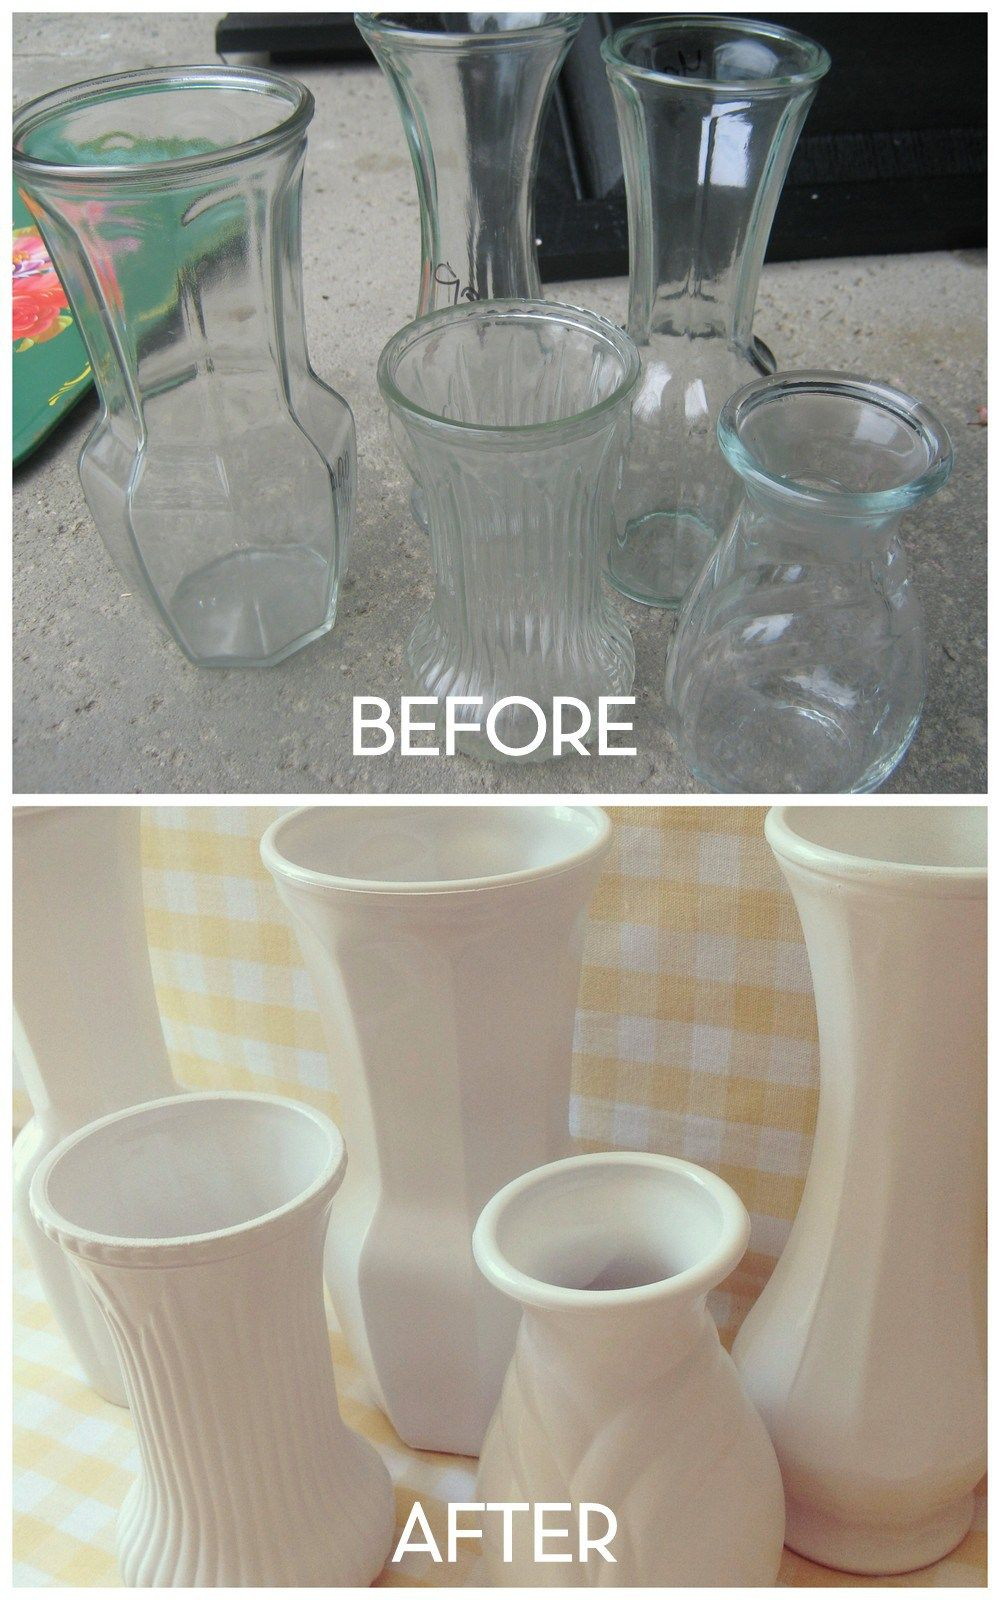 How to spray paint vases pinteres home made modern faux milk glass fabulous idea for all those cheap vases that bouquets come in just a couple coats of white gloss spray paint reviewsmspy